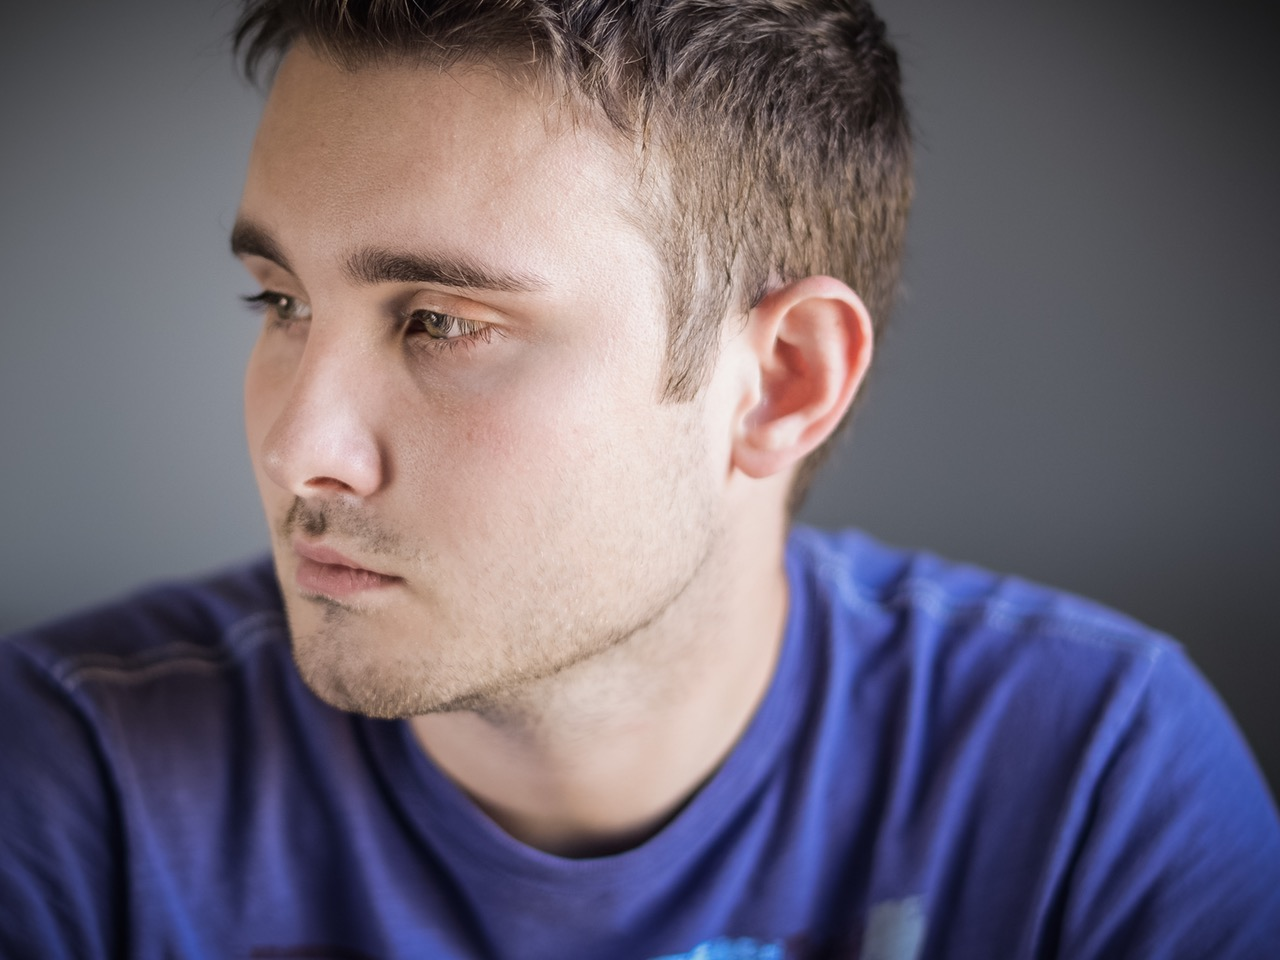 Portrait Photography With a Speedlight